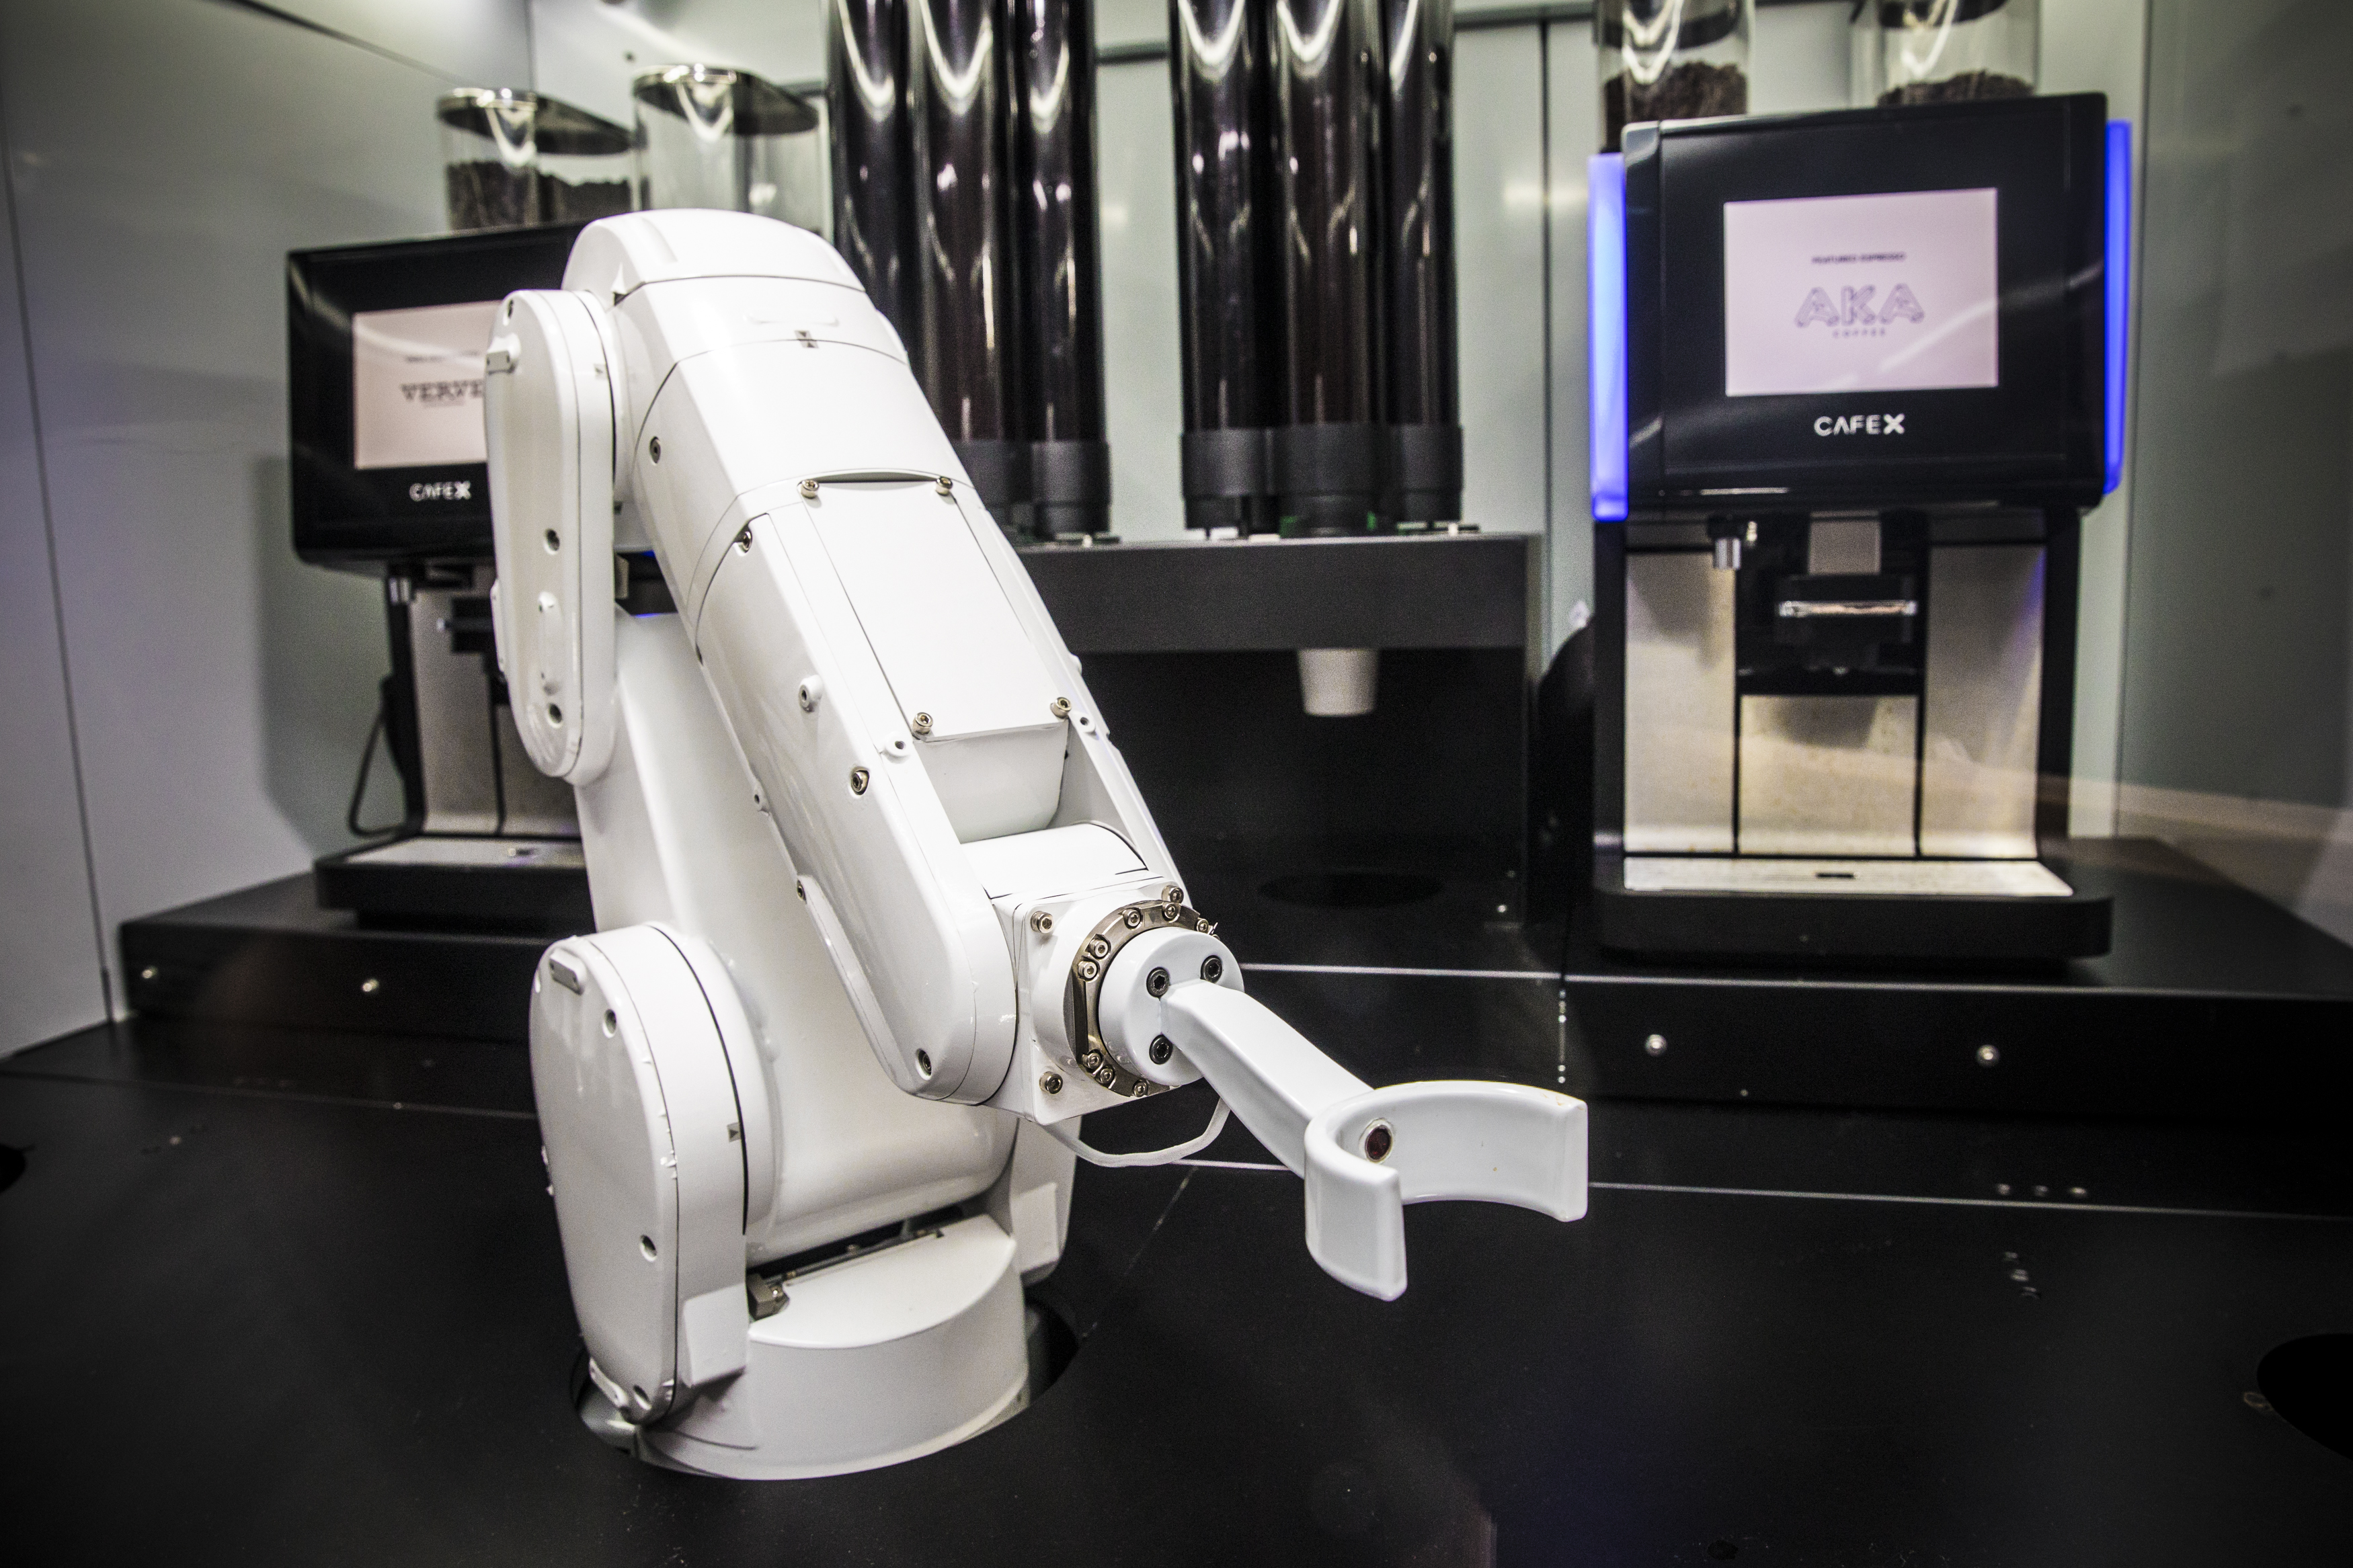 Cafe X adapted industrial robots to make coffee. This one in San Francisco is called Gordon.